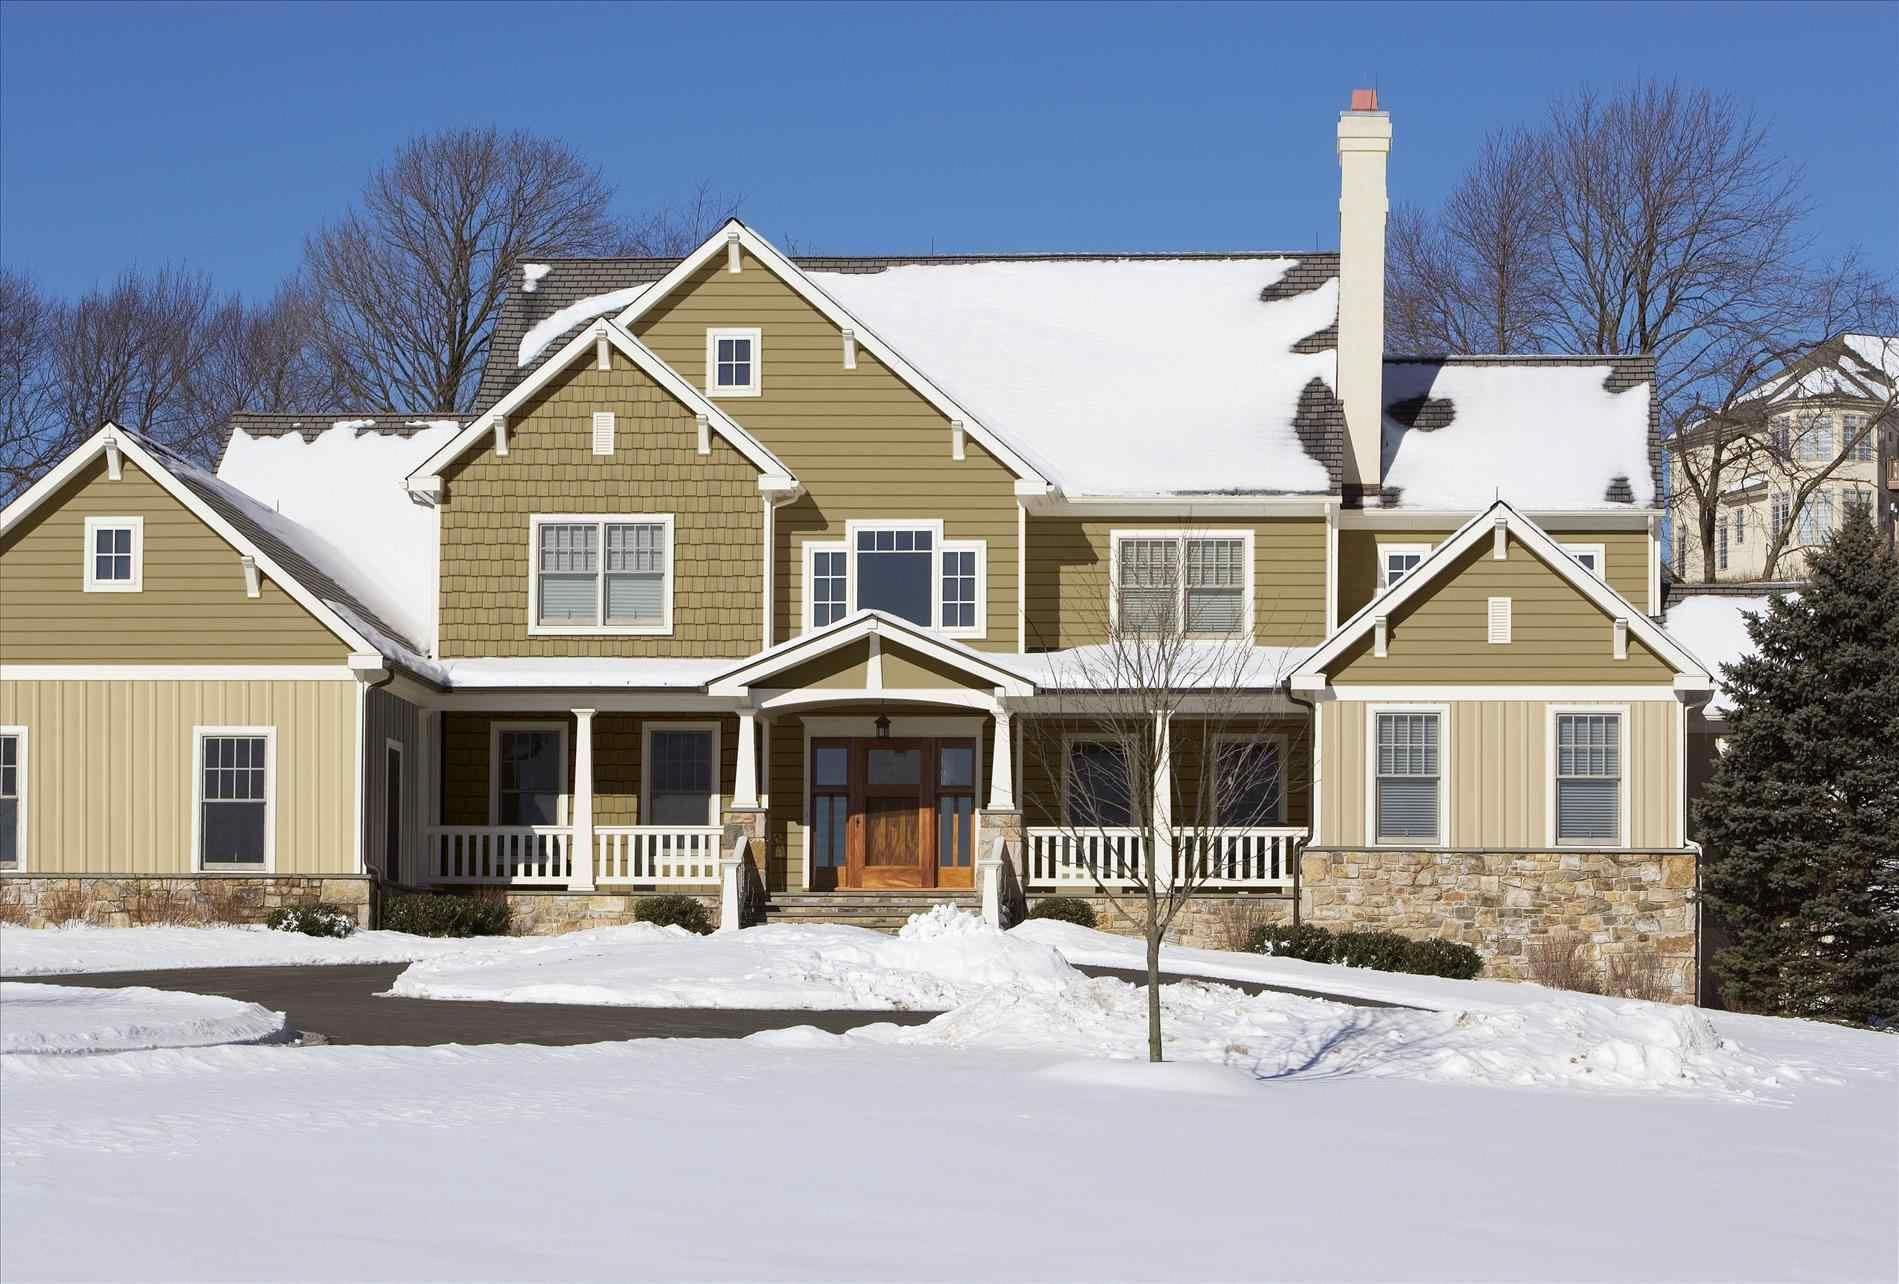 Bing Images House Exterior Certainteed Certainteed Board And Batten Siding Siding Flagstone Bing Images House Exter House Exterior Image House Insulated Siding